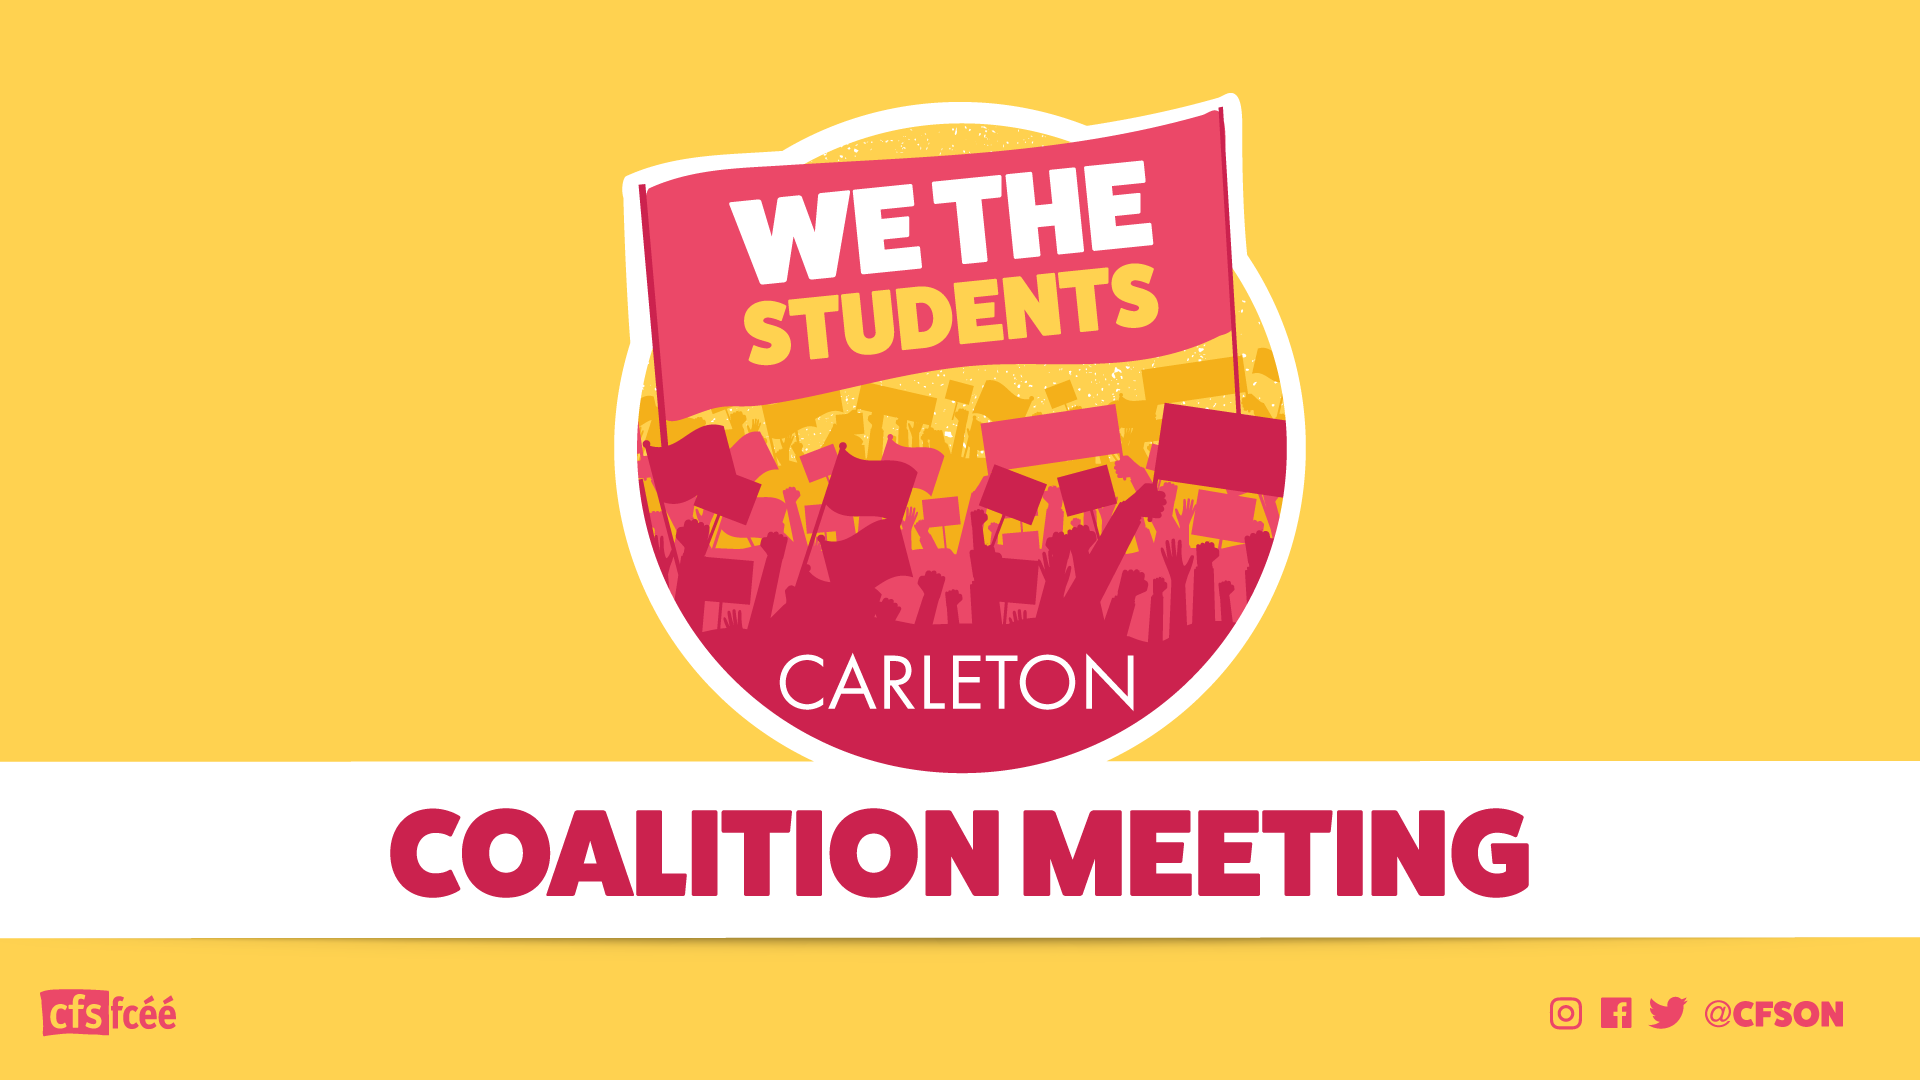 Carleton University Campus Coalition Meeting: March 7